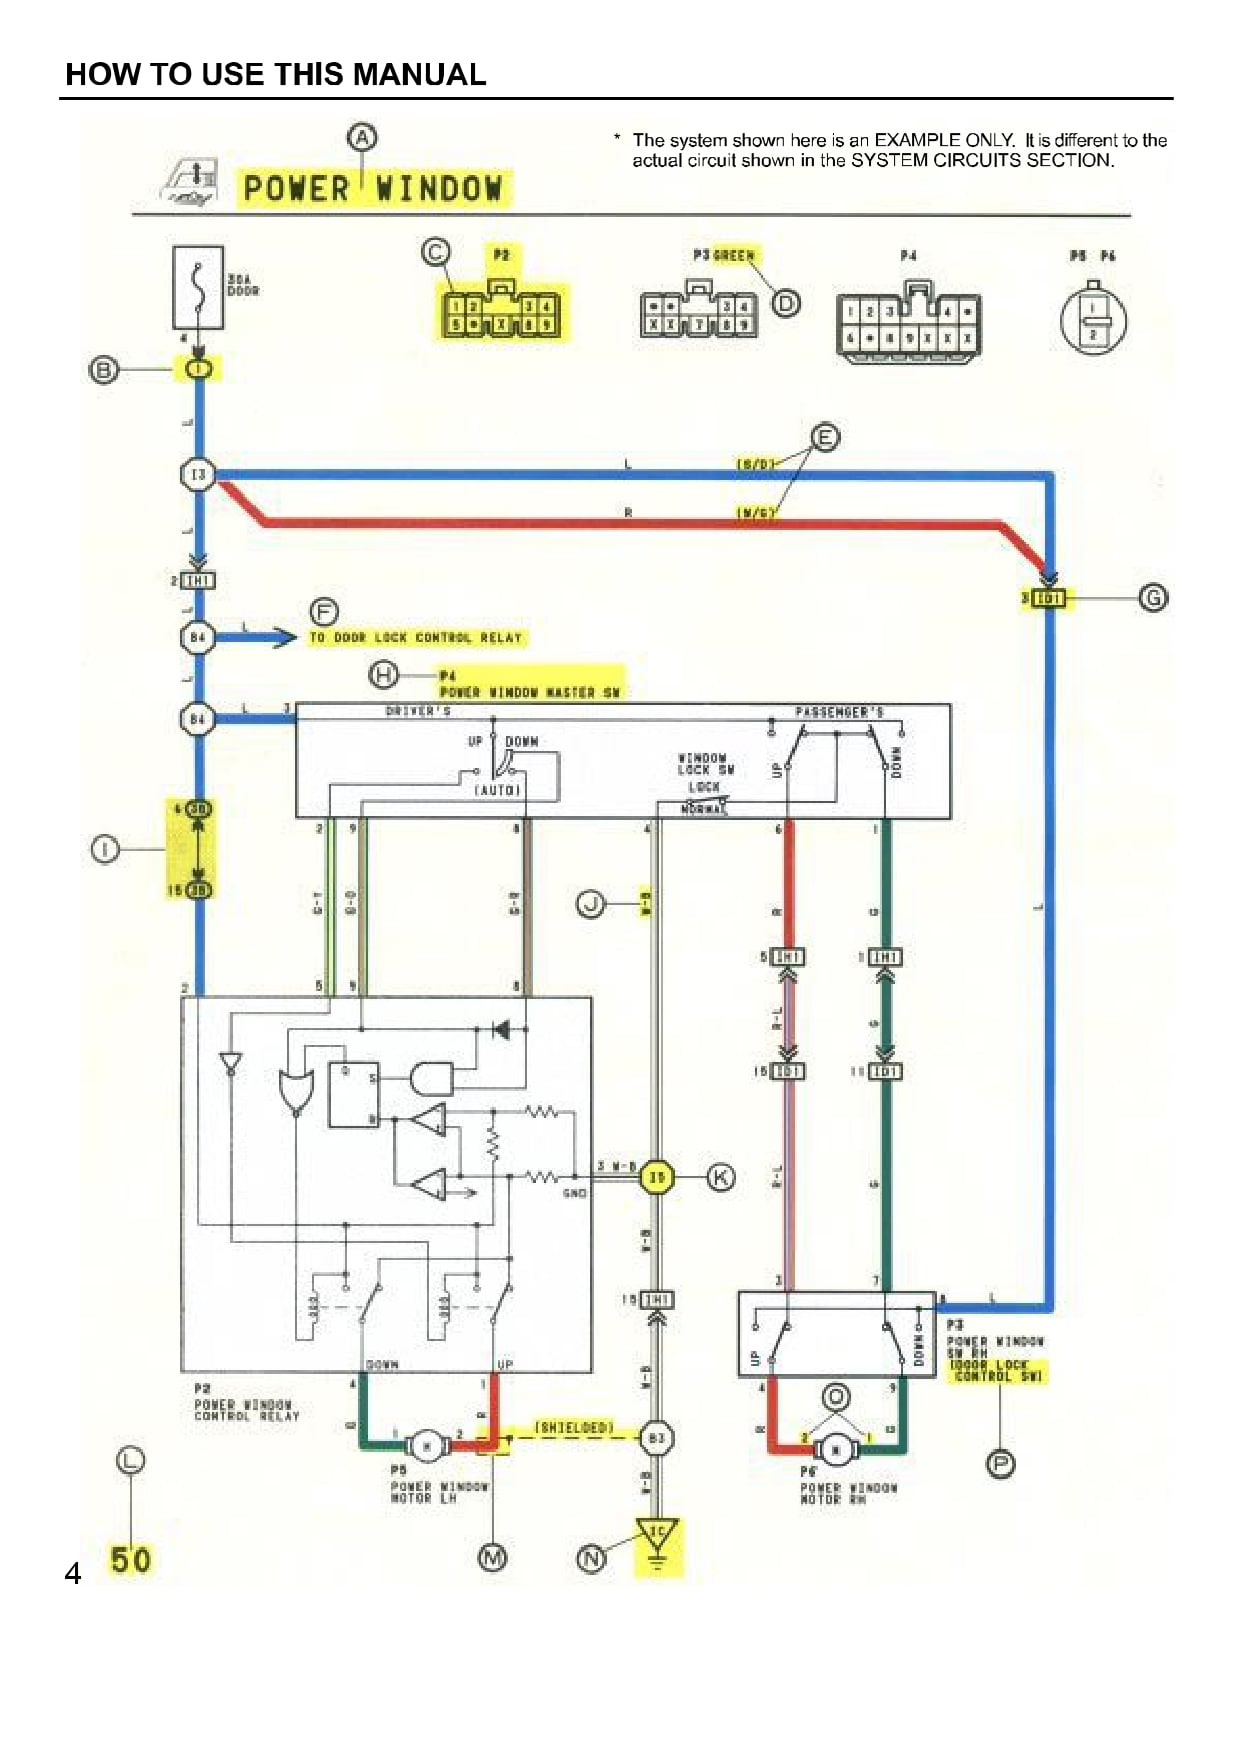 2008 Camry Alternator Wiring Diagram - Wiring Diagram Direct file-crystal -  file-crystal.siciliabeb.it | 2008 Camry Wiring Diagram |  | file-crystal.siciliabeb.it